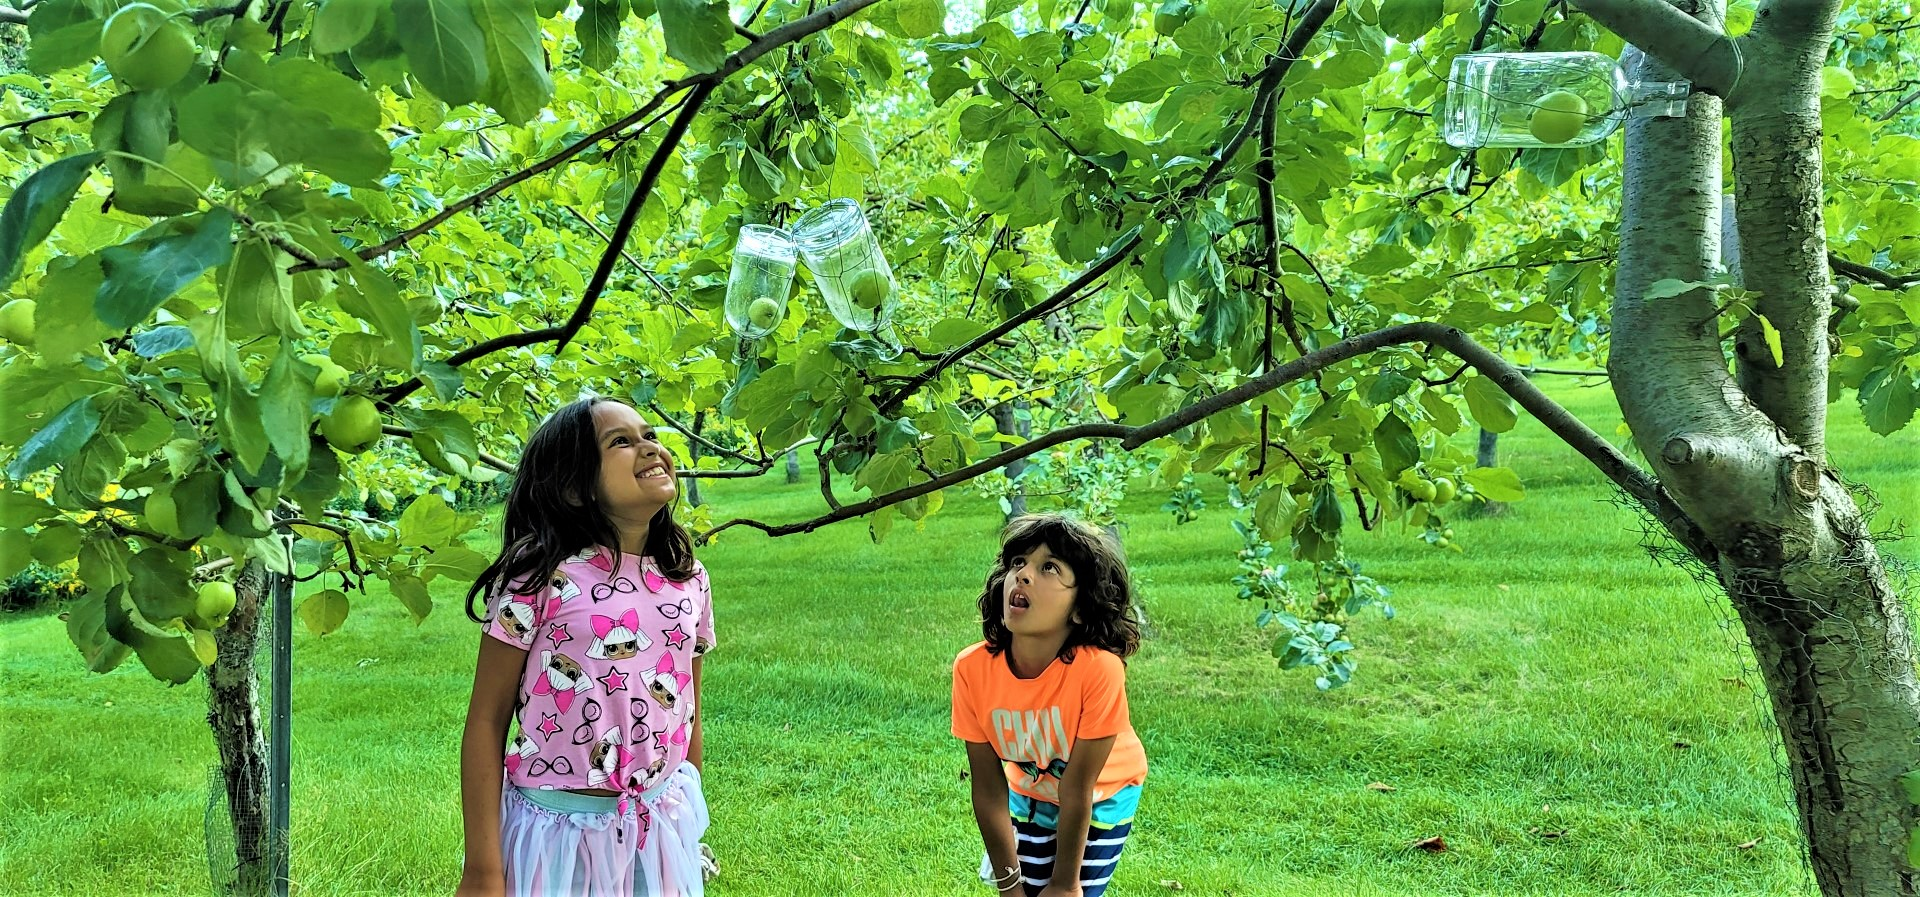 kids looking at green trees with apples growing in Le Verger Poméloi bottles